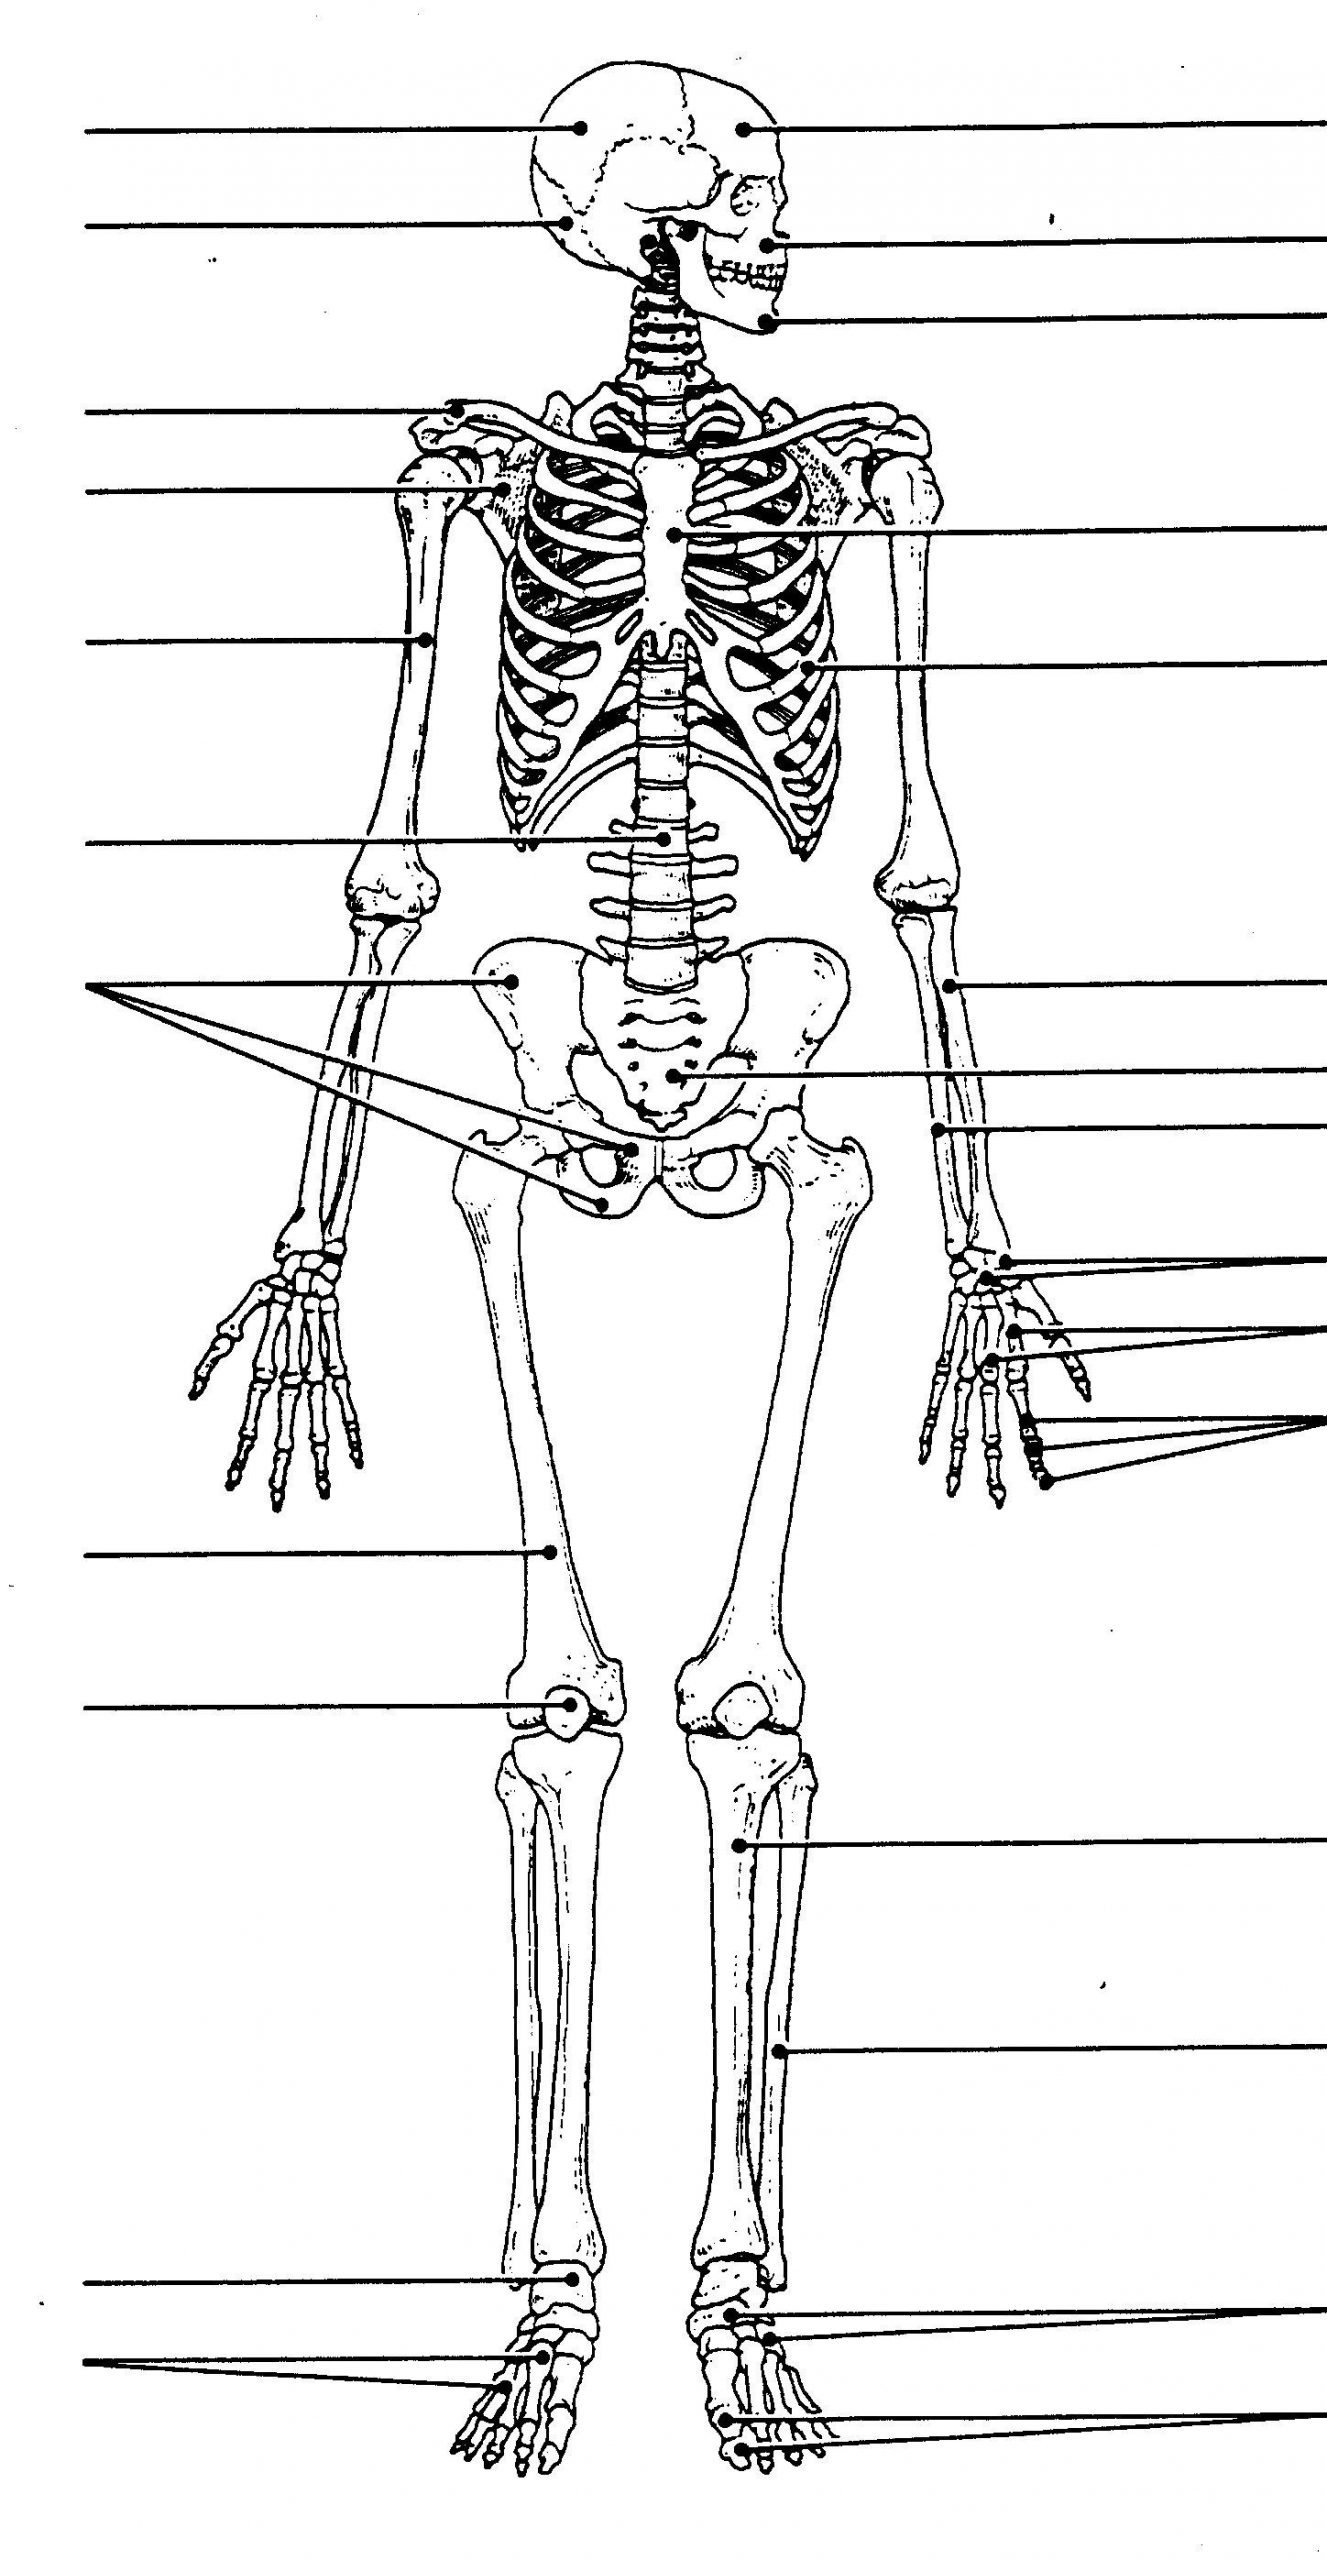 Blank Bone Worksheets Human Skeleton Diagram Unlabeled Human Skeleton Diagram